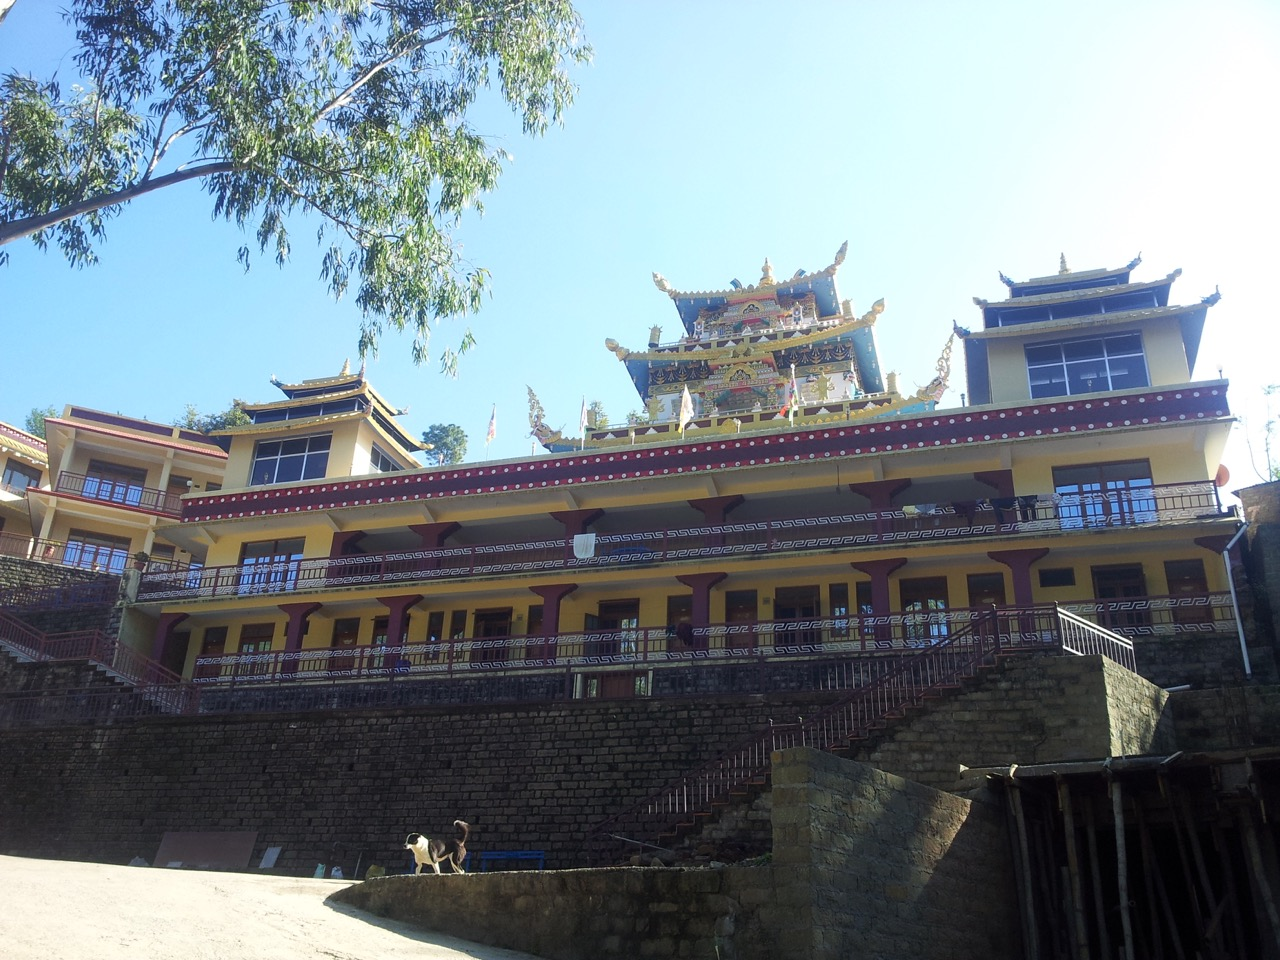 Zangdok Palri or the Lotus Light temple of Padmasambhava is located diametrically opposite to the huge idol. Every place, including the three levels of the palace itself is open to the general public.